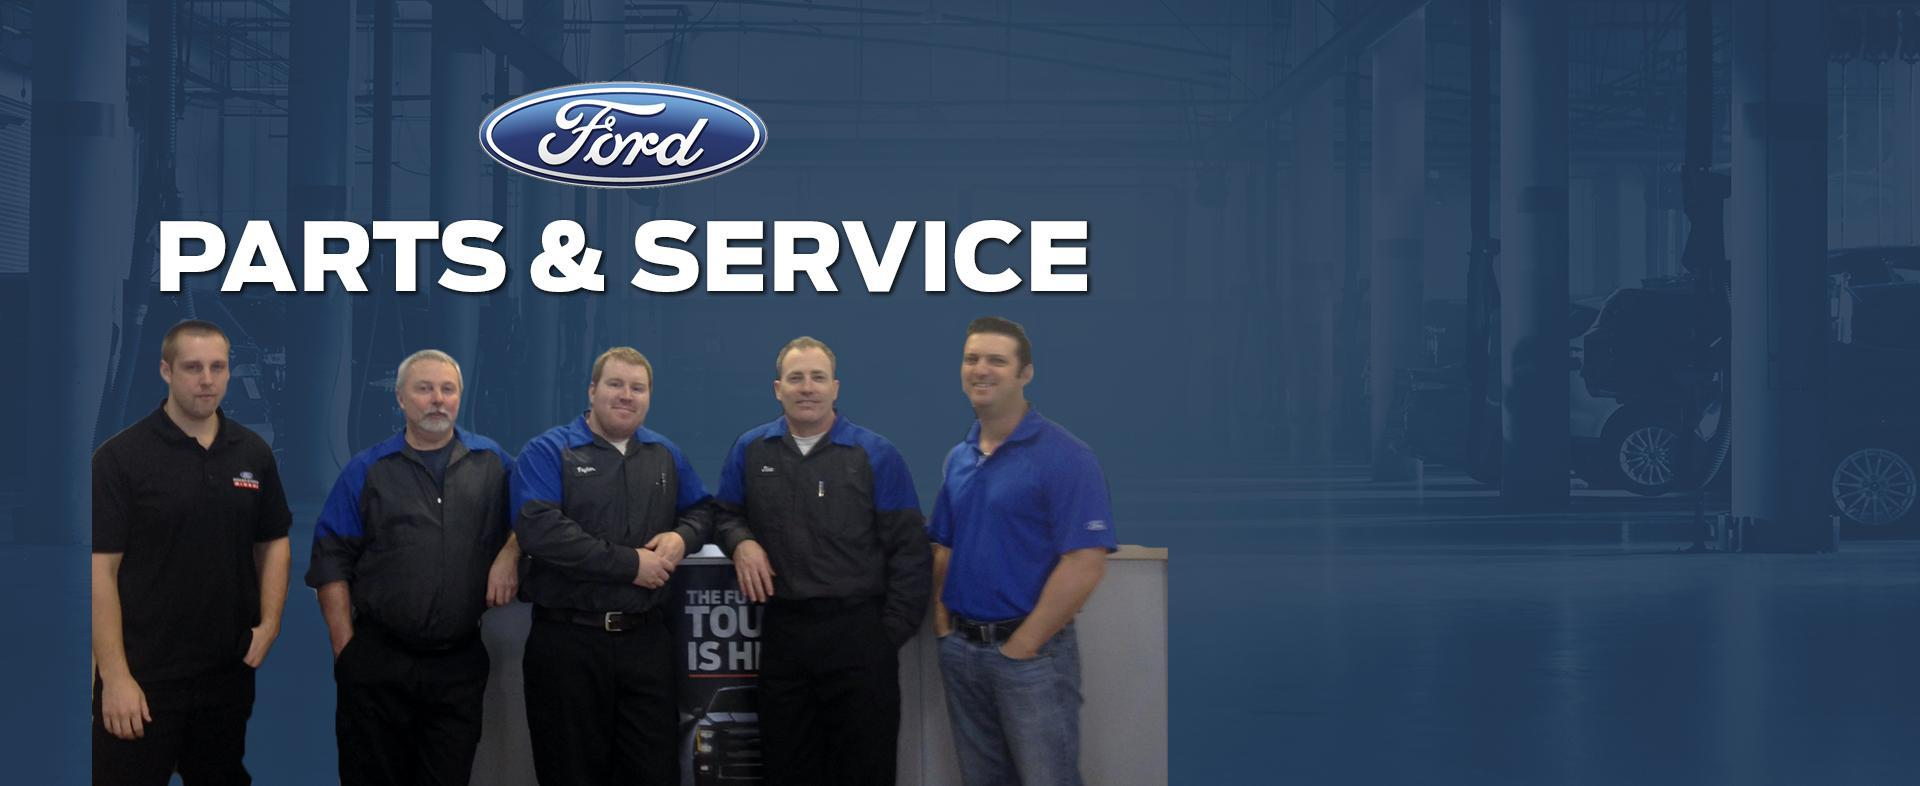 Ford Home Service image